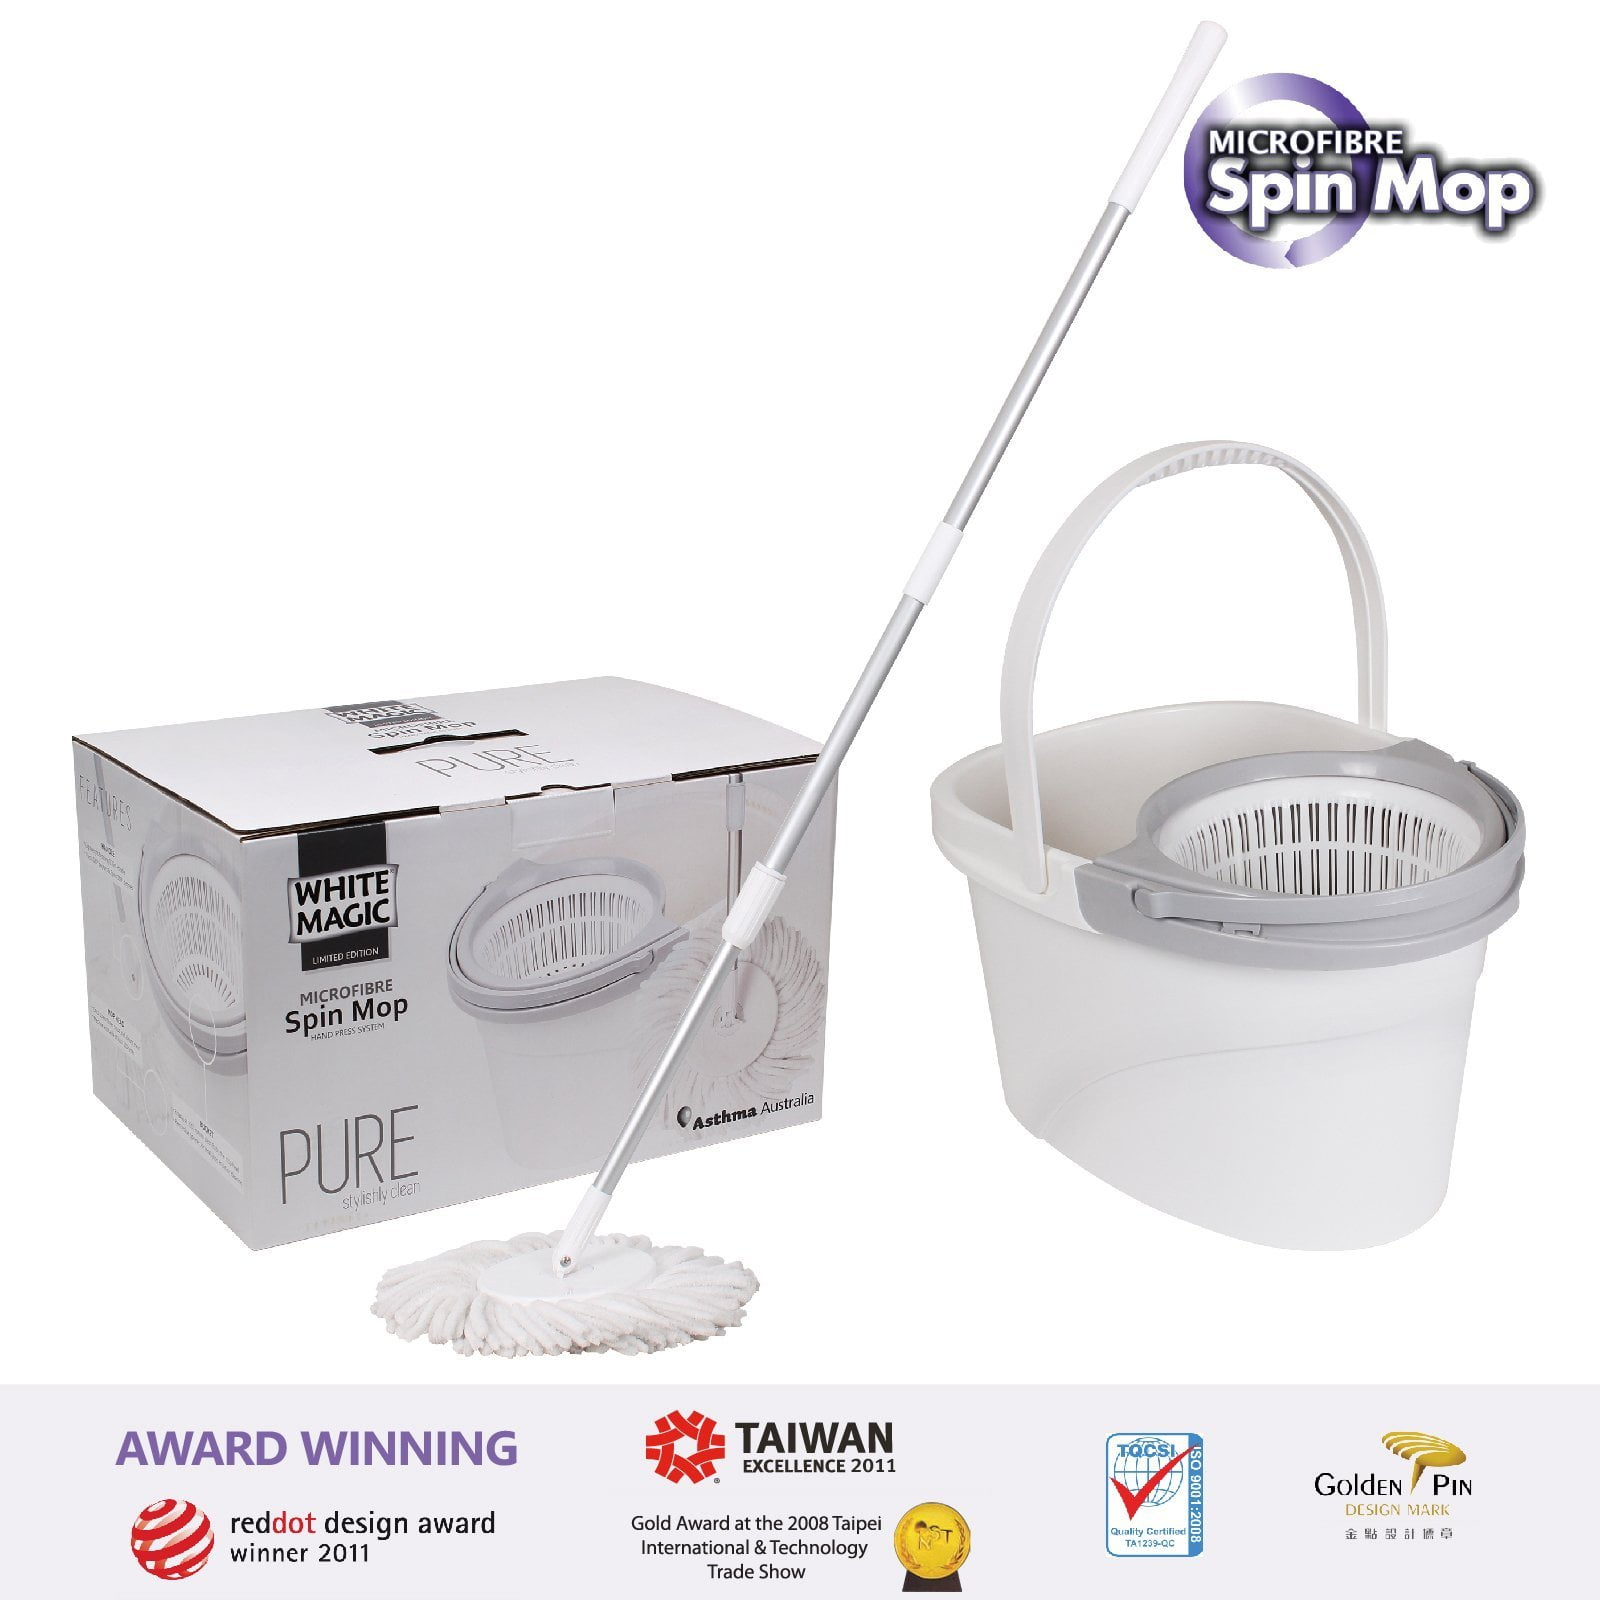 White Magic Pure Spin Mop - bucket x1 + handle x1 + extra power mop head x1